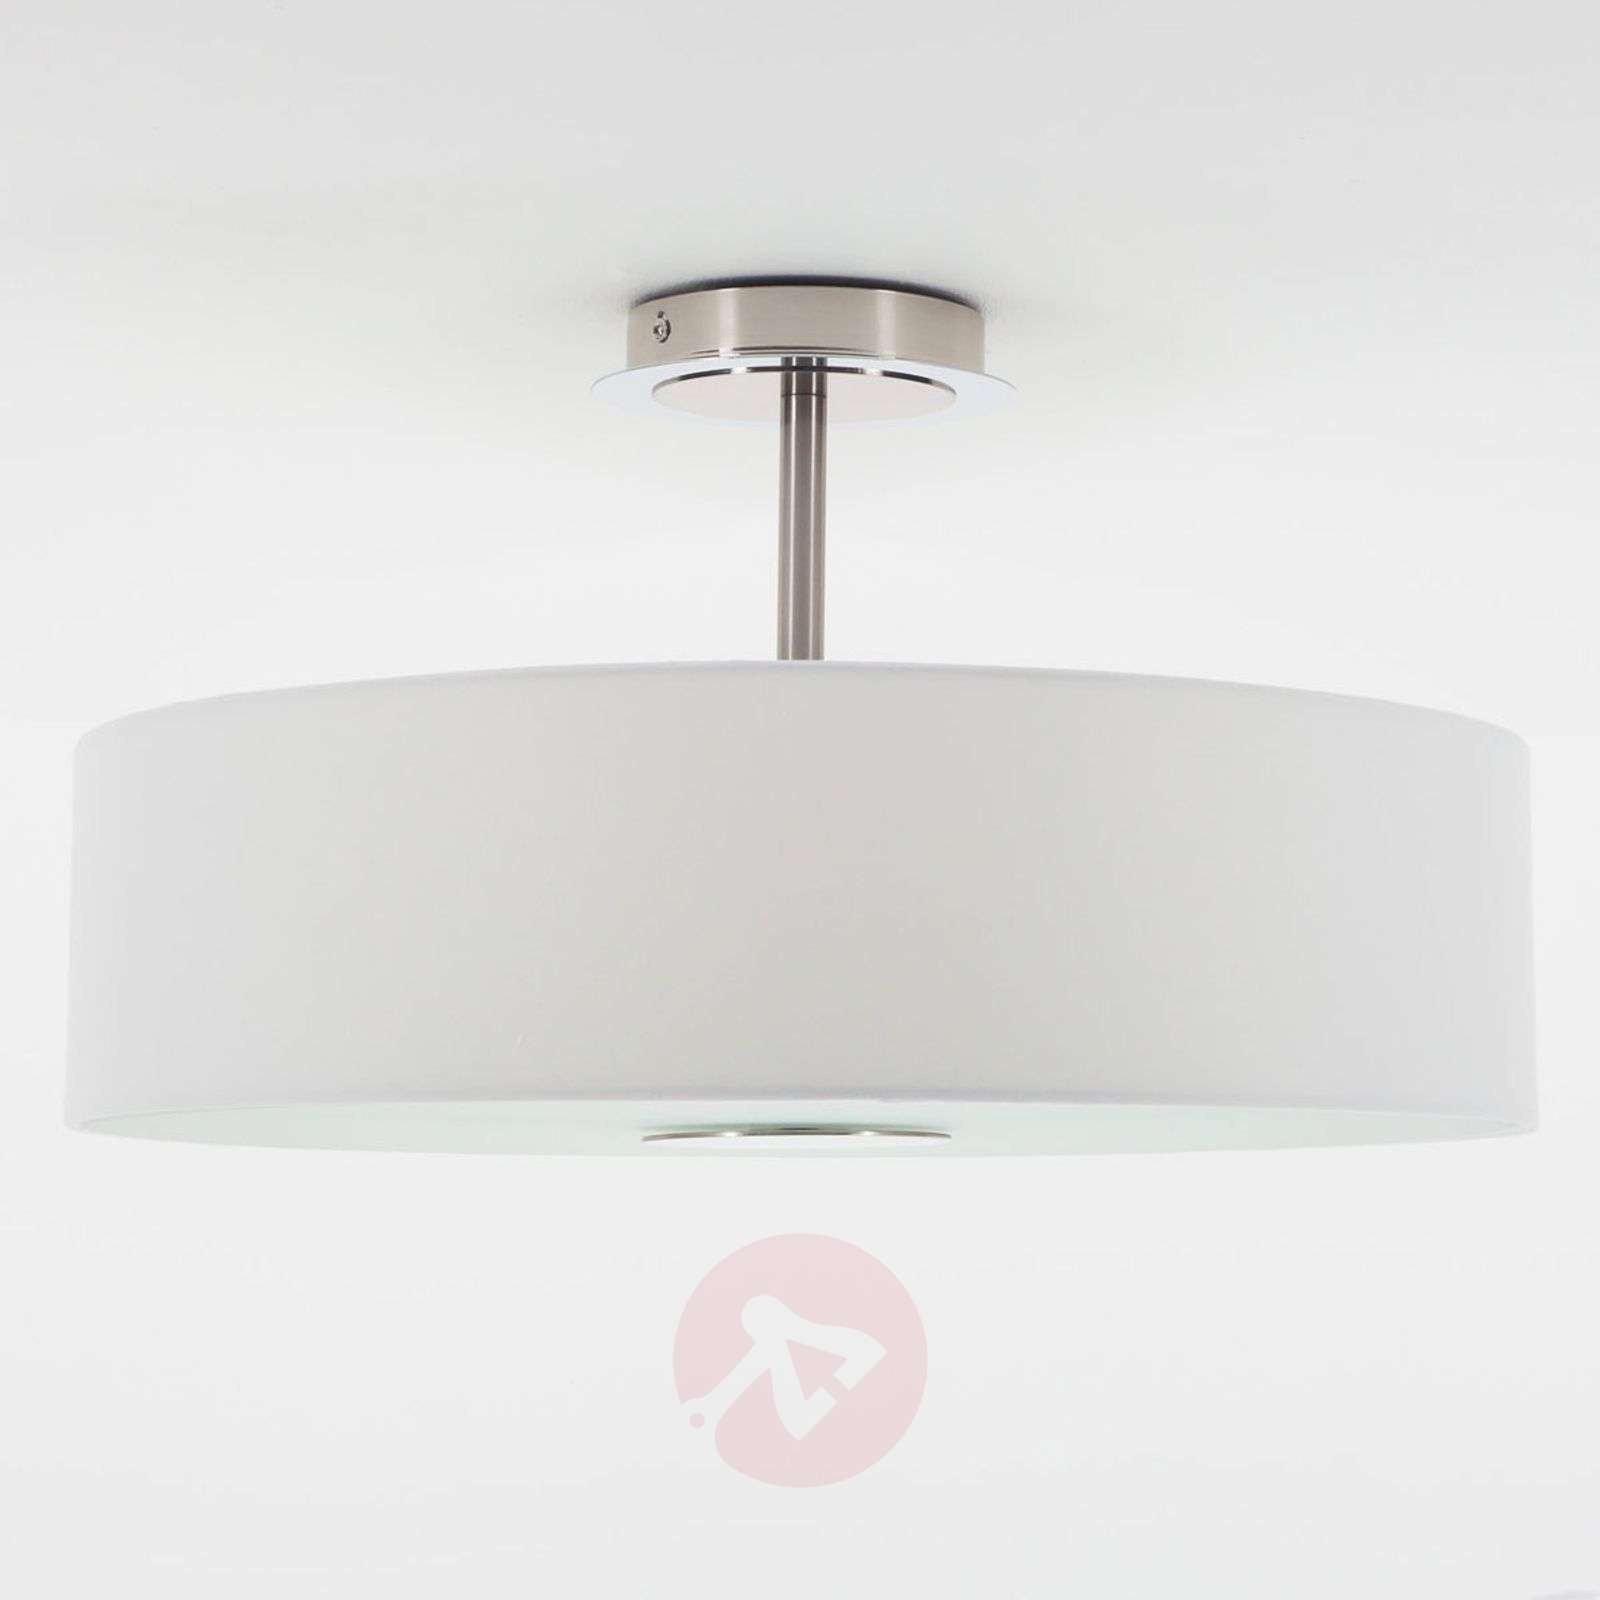 Timeless ceiling light Josia made of white fabric-9620048-01